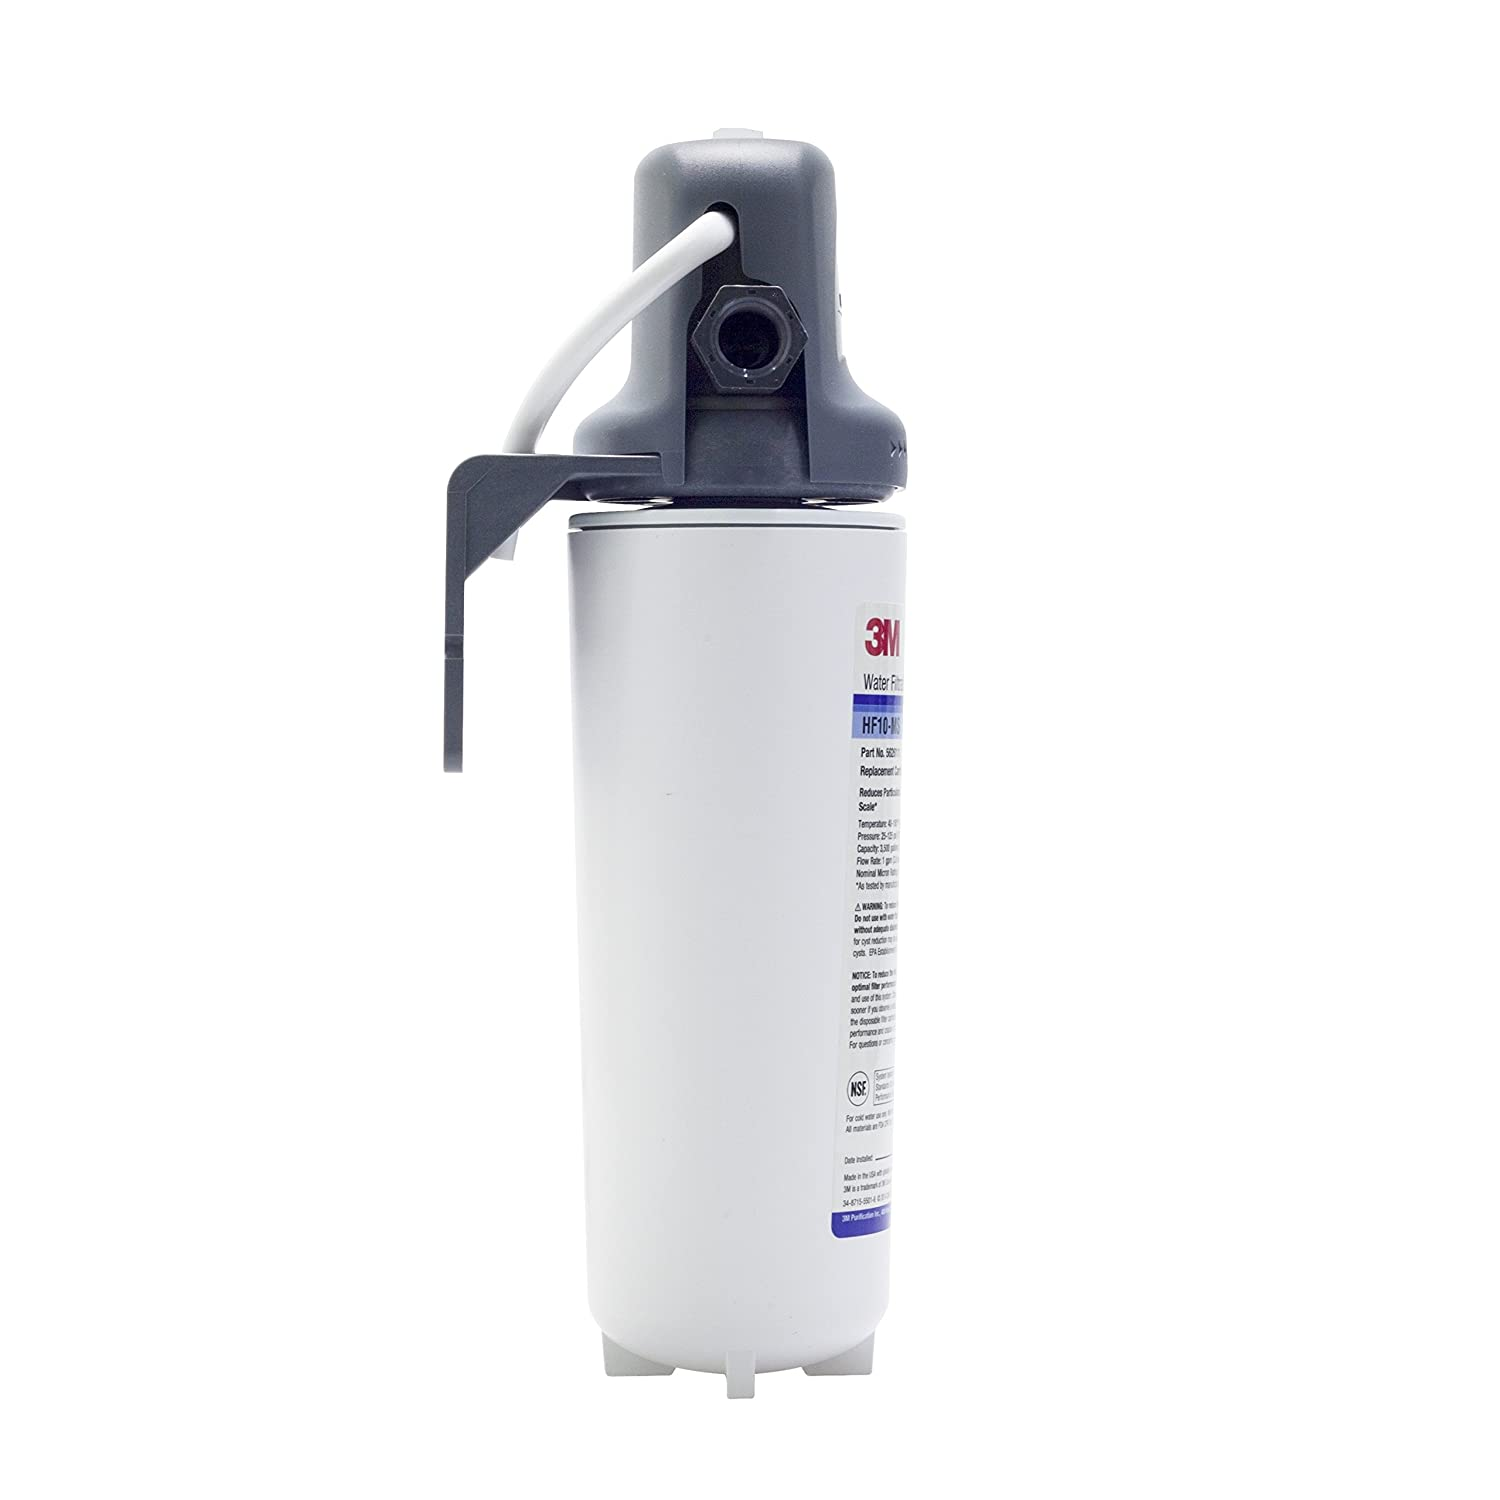 3M Water Filtration Products Brew120 Brew120-Ms Model 5616001 Filtration System